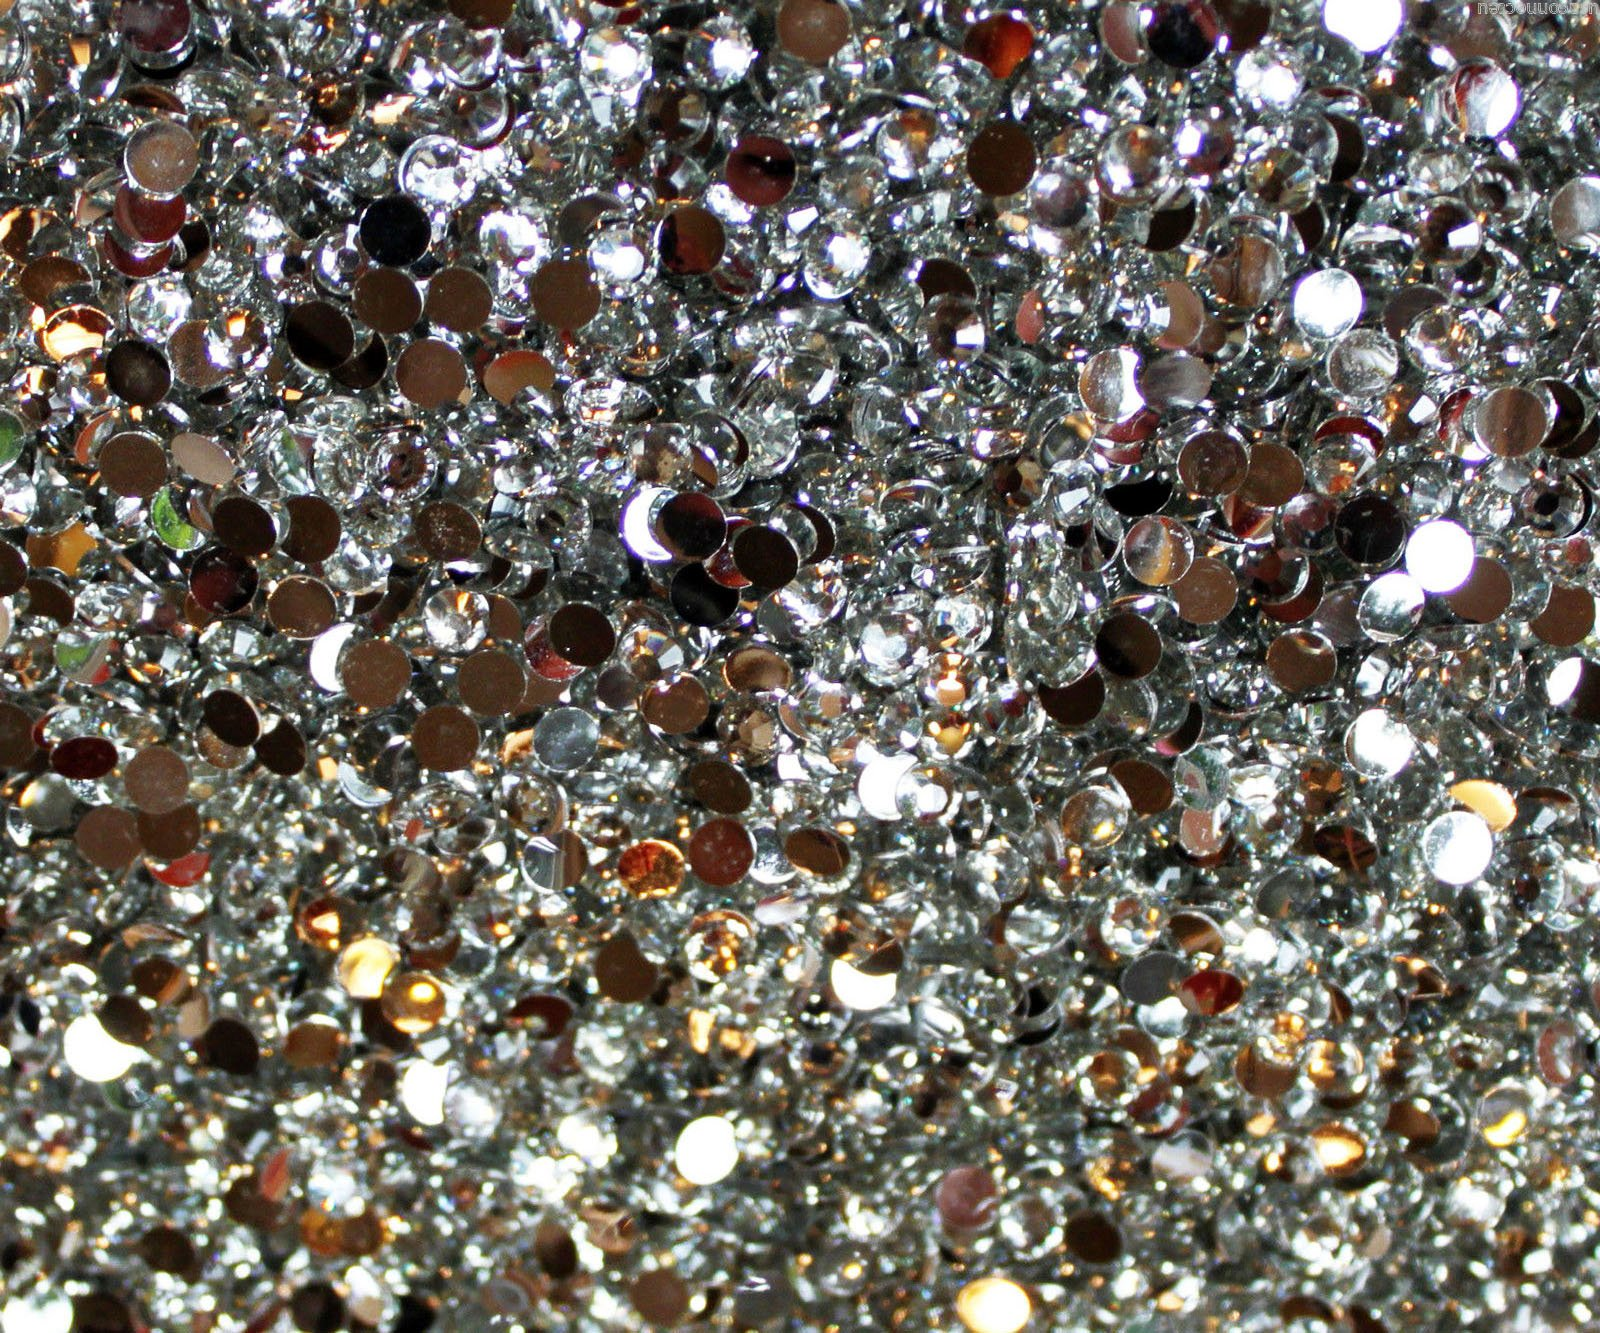 "100% Custom Made (6.5mm) 1000 Bulk Pieces of Small Size ""Glue-On"" Flatback Embellishments for Decorating, Made of Acrylic Resin w/ Shiny Iridescent Crafting Rhinestone Crystal Diamond Style {Clear}"